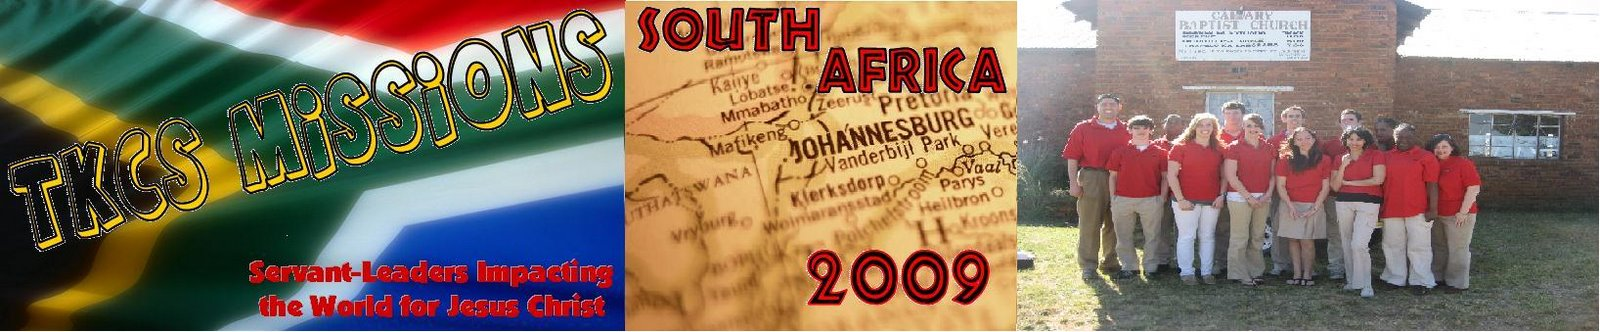 South Africa '09